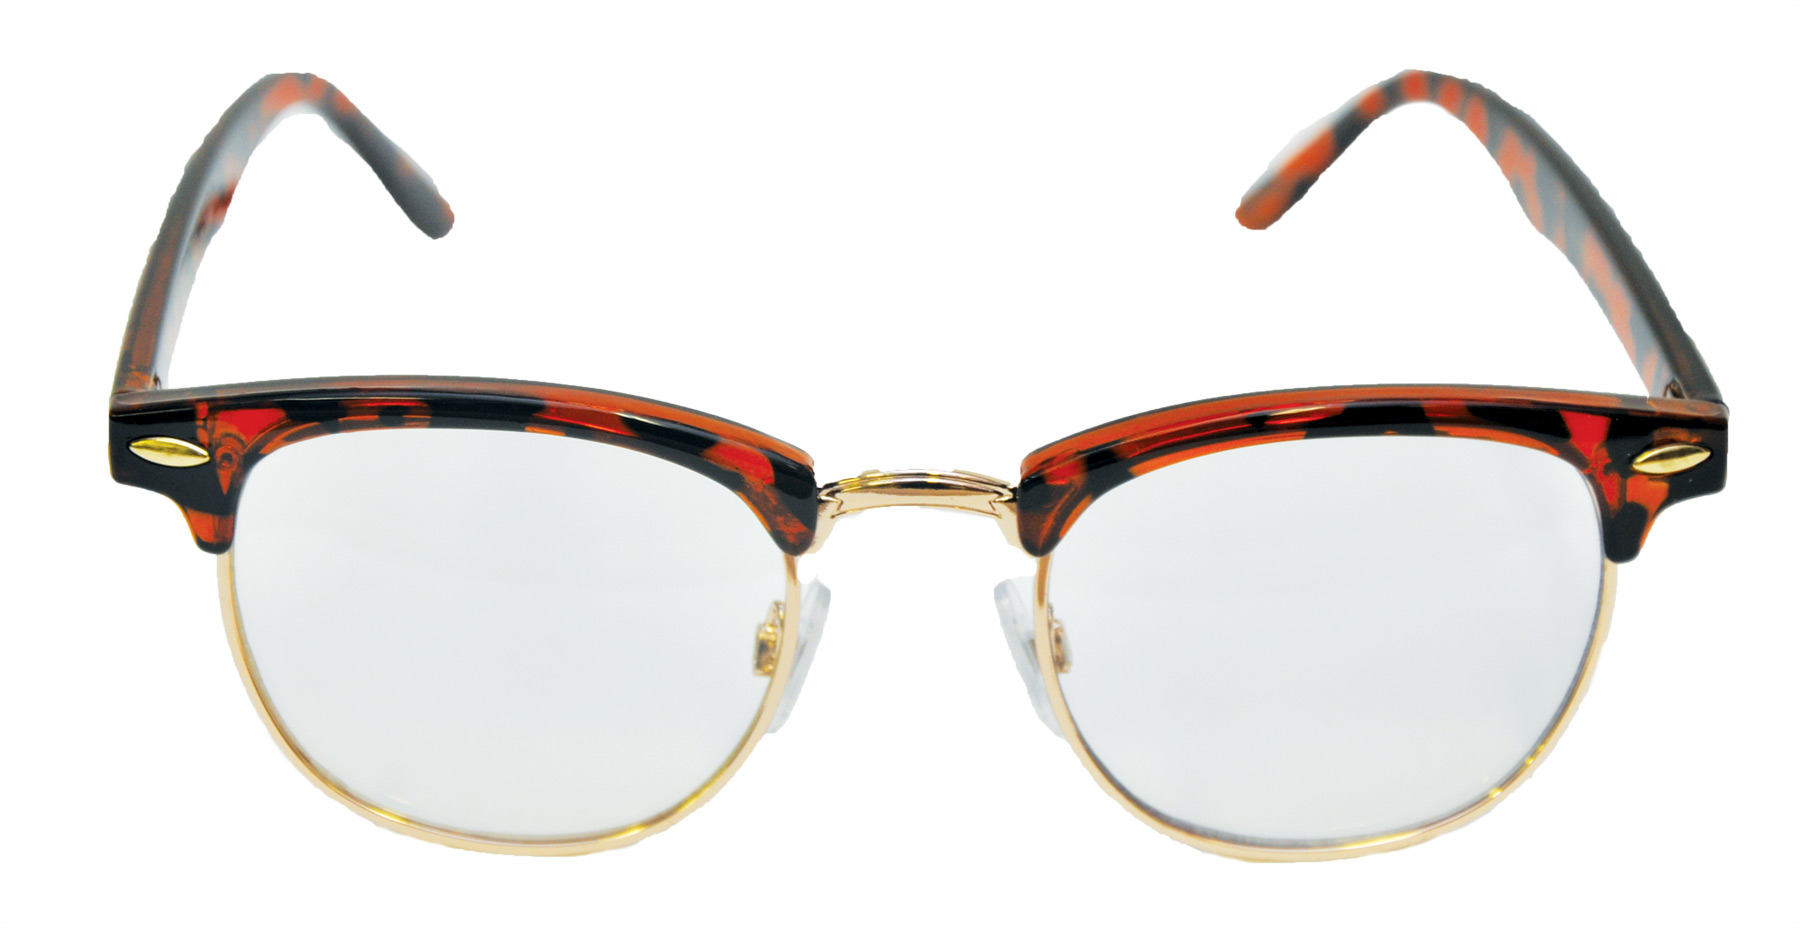 Featured Image for Mr. 50s Clear Glasses